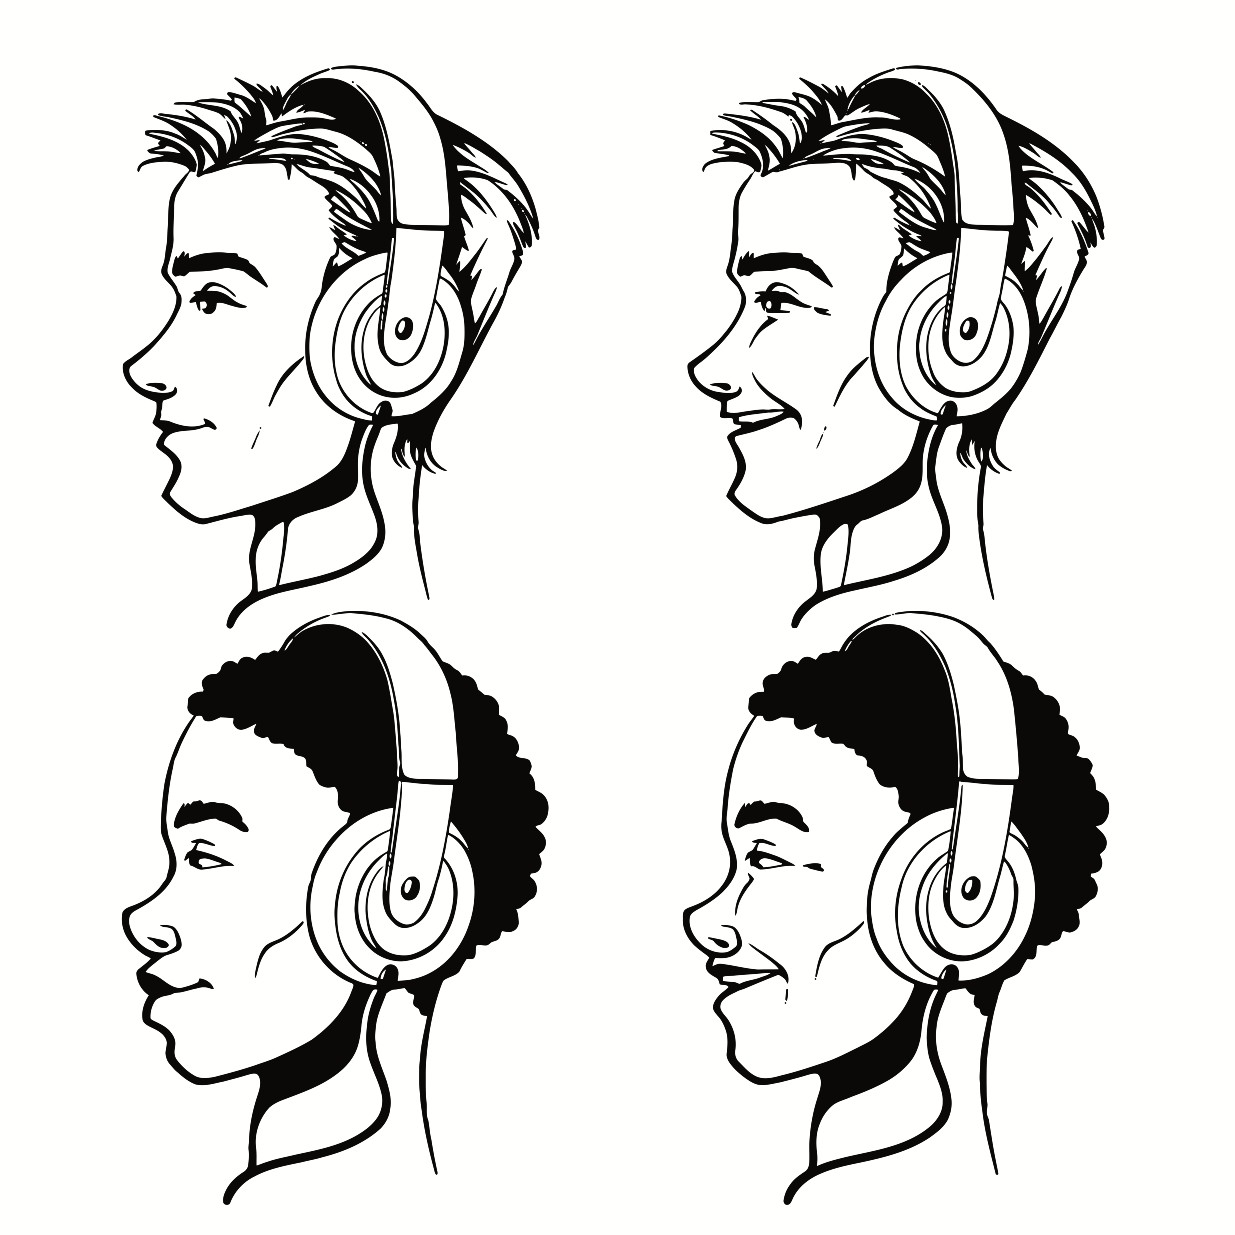 1235x1235 Men With Headphones Printable Image Illustration Sketch For Men